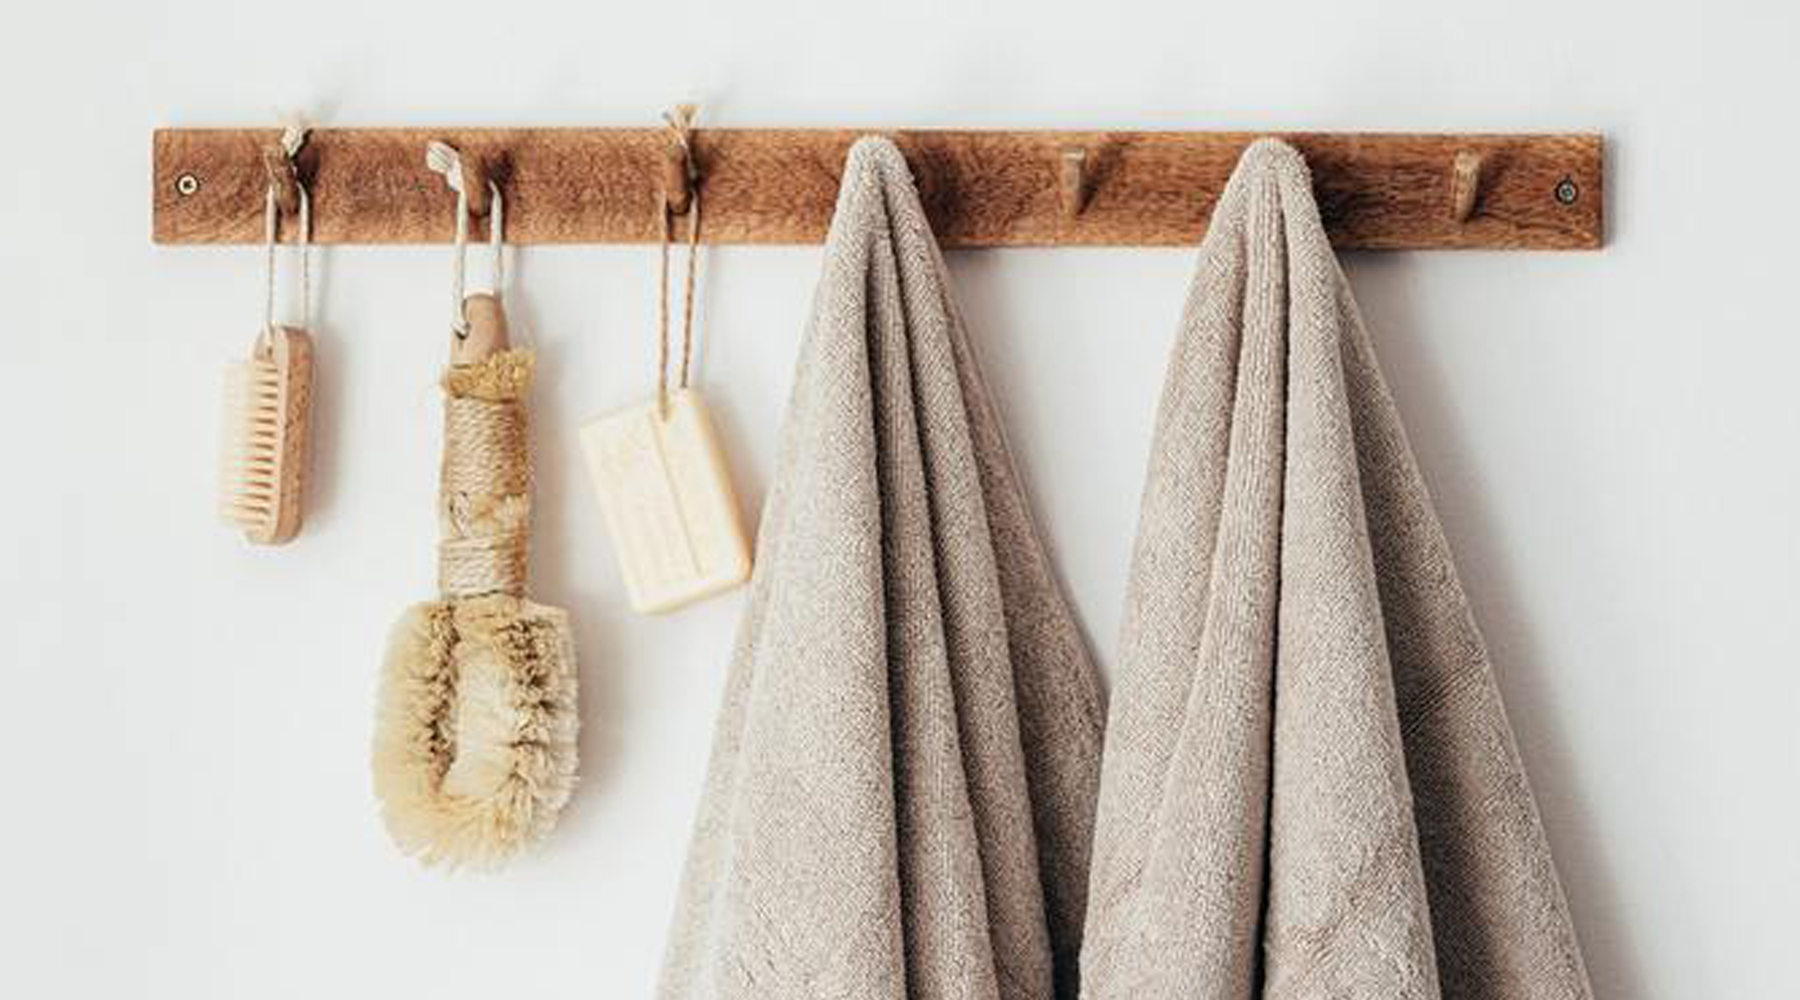 bamboo towels are sustainable